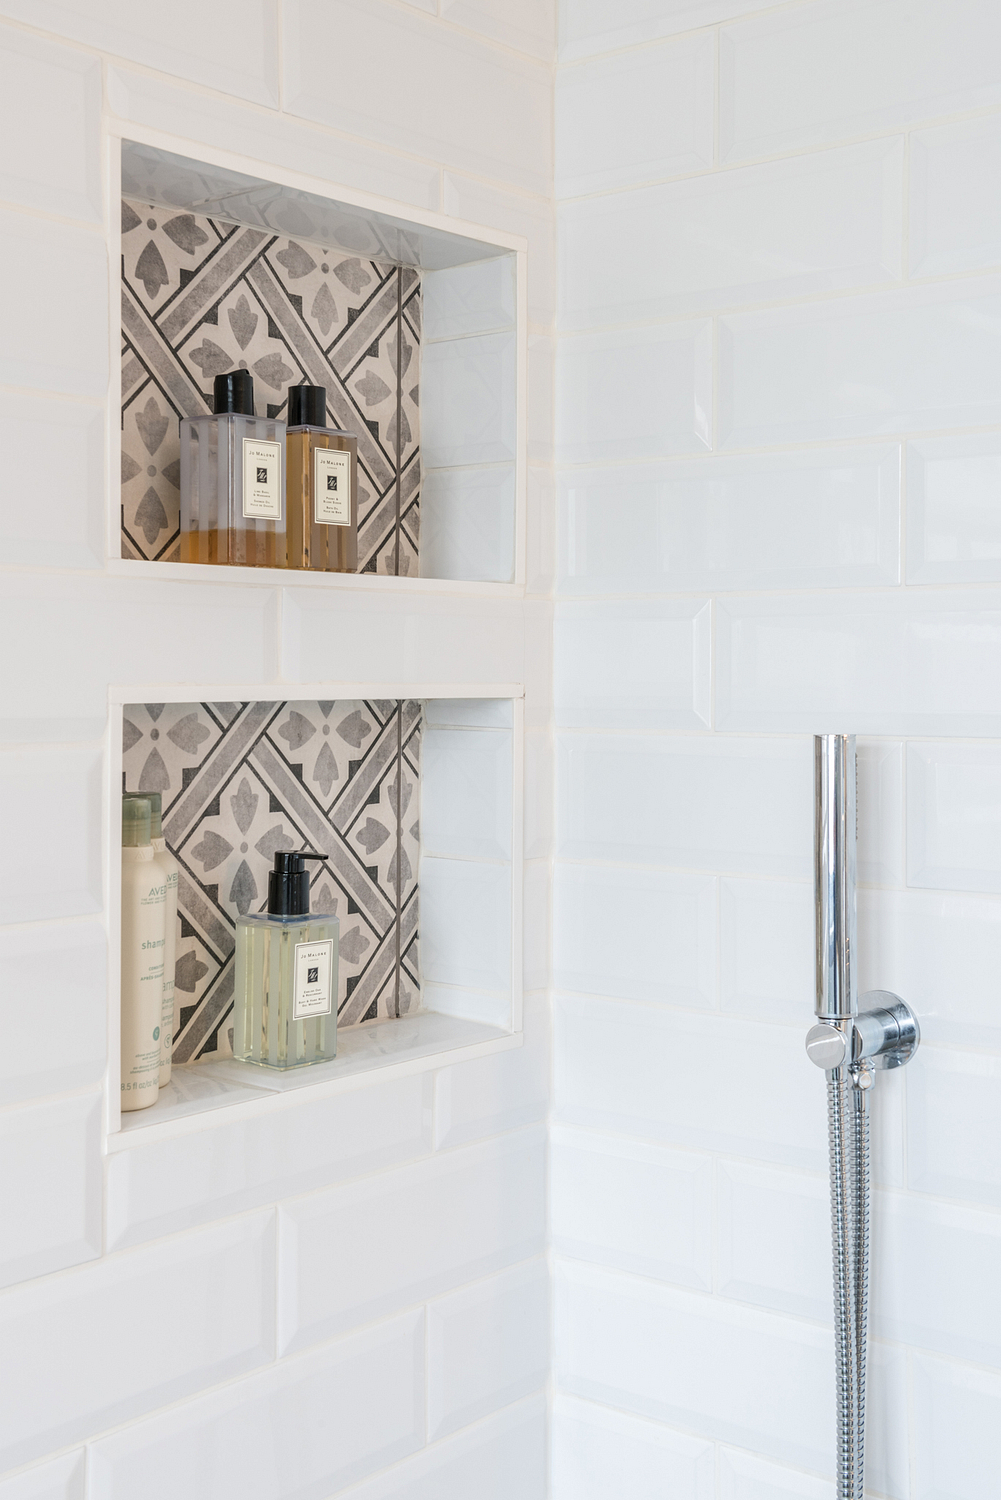 Shower shelf detail with printed tiles, London